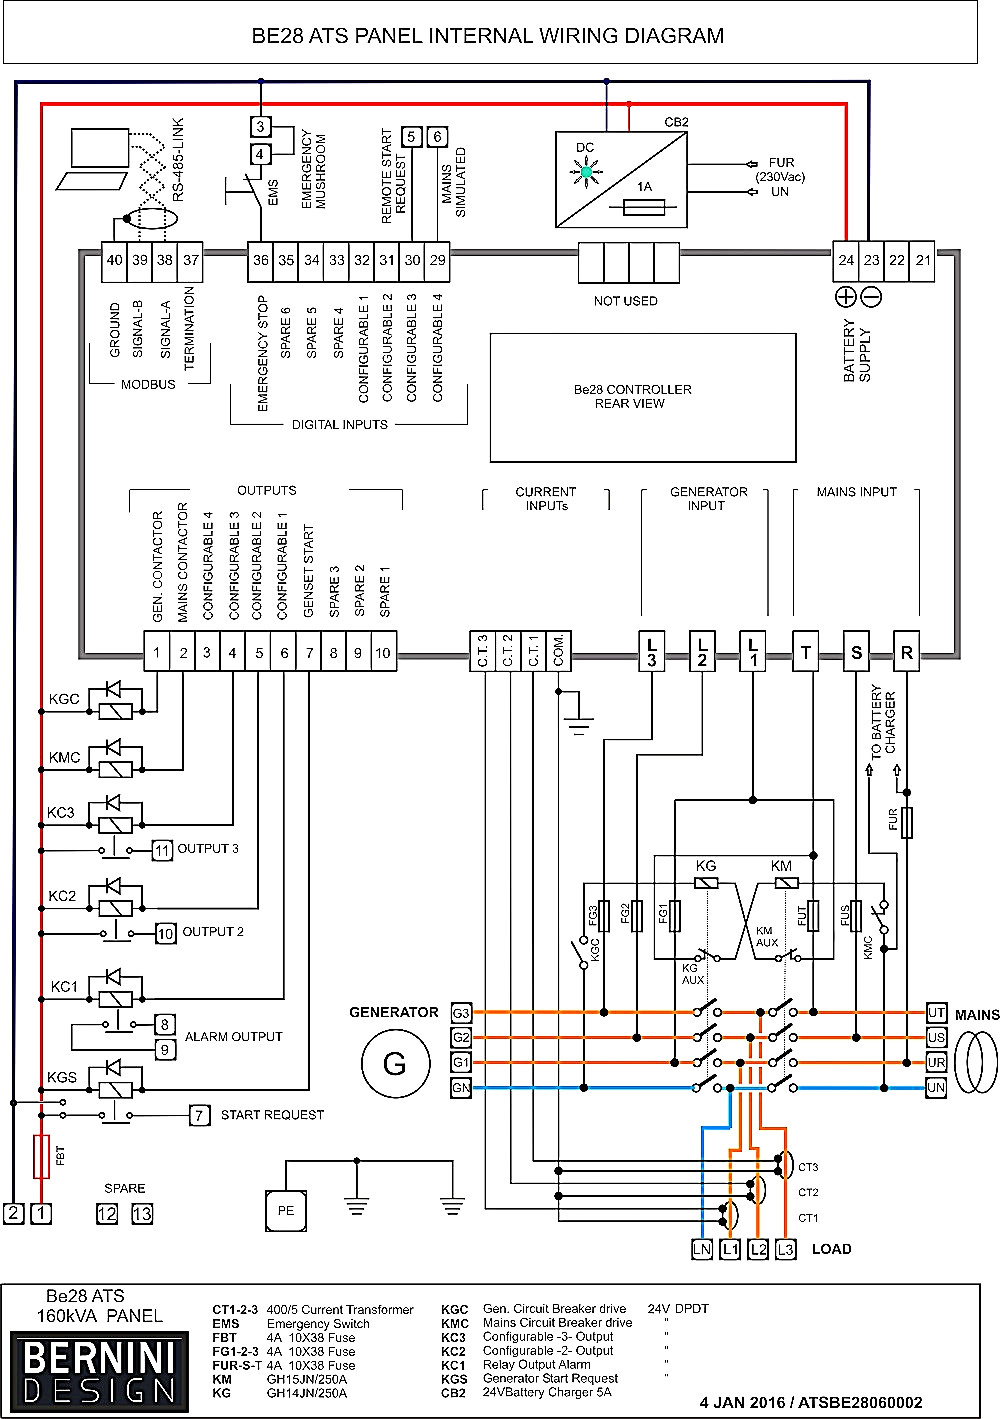 generac 6333 wiring diagram download. Black Bedroom Furniture Sets. Home Design Ideas